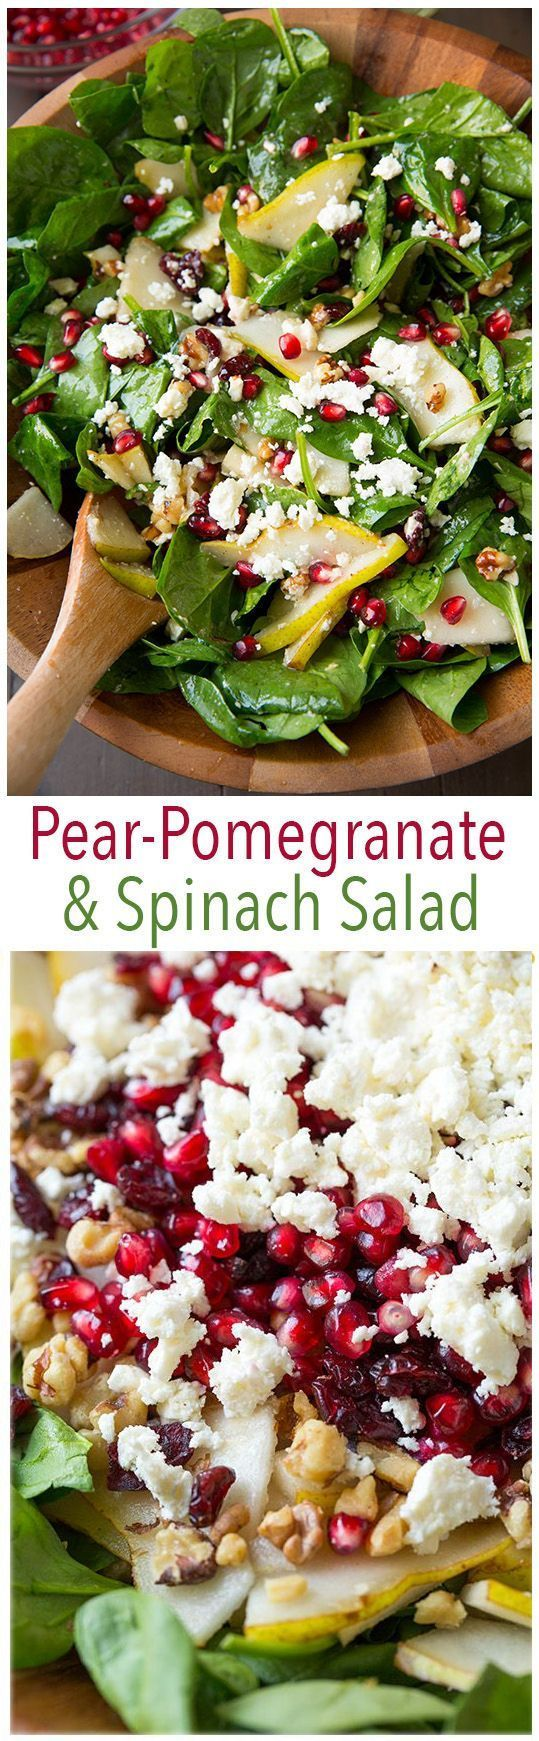 Pear Pomegranate and Spinach Salad with Feta and Vinaigrette - this salad is so delicious and so festive! Perfect for the holidays. #salad #pear #pomegranate